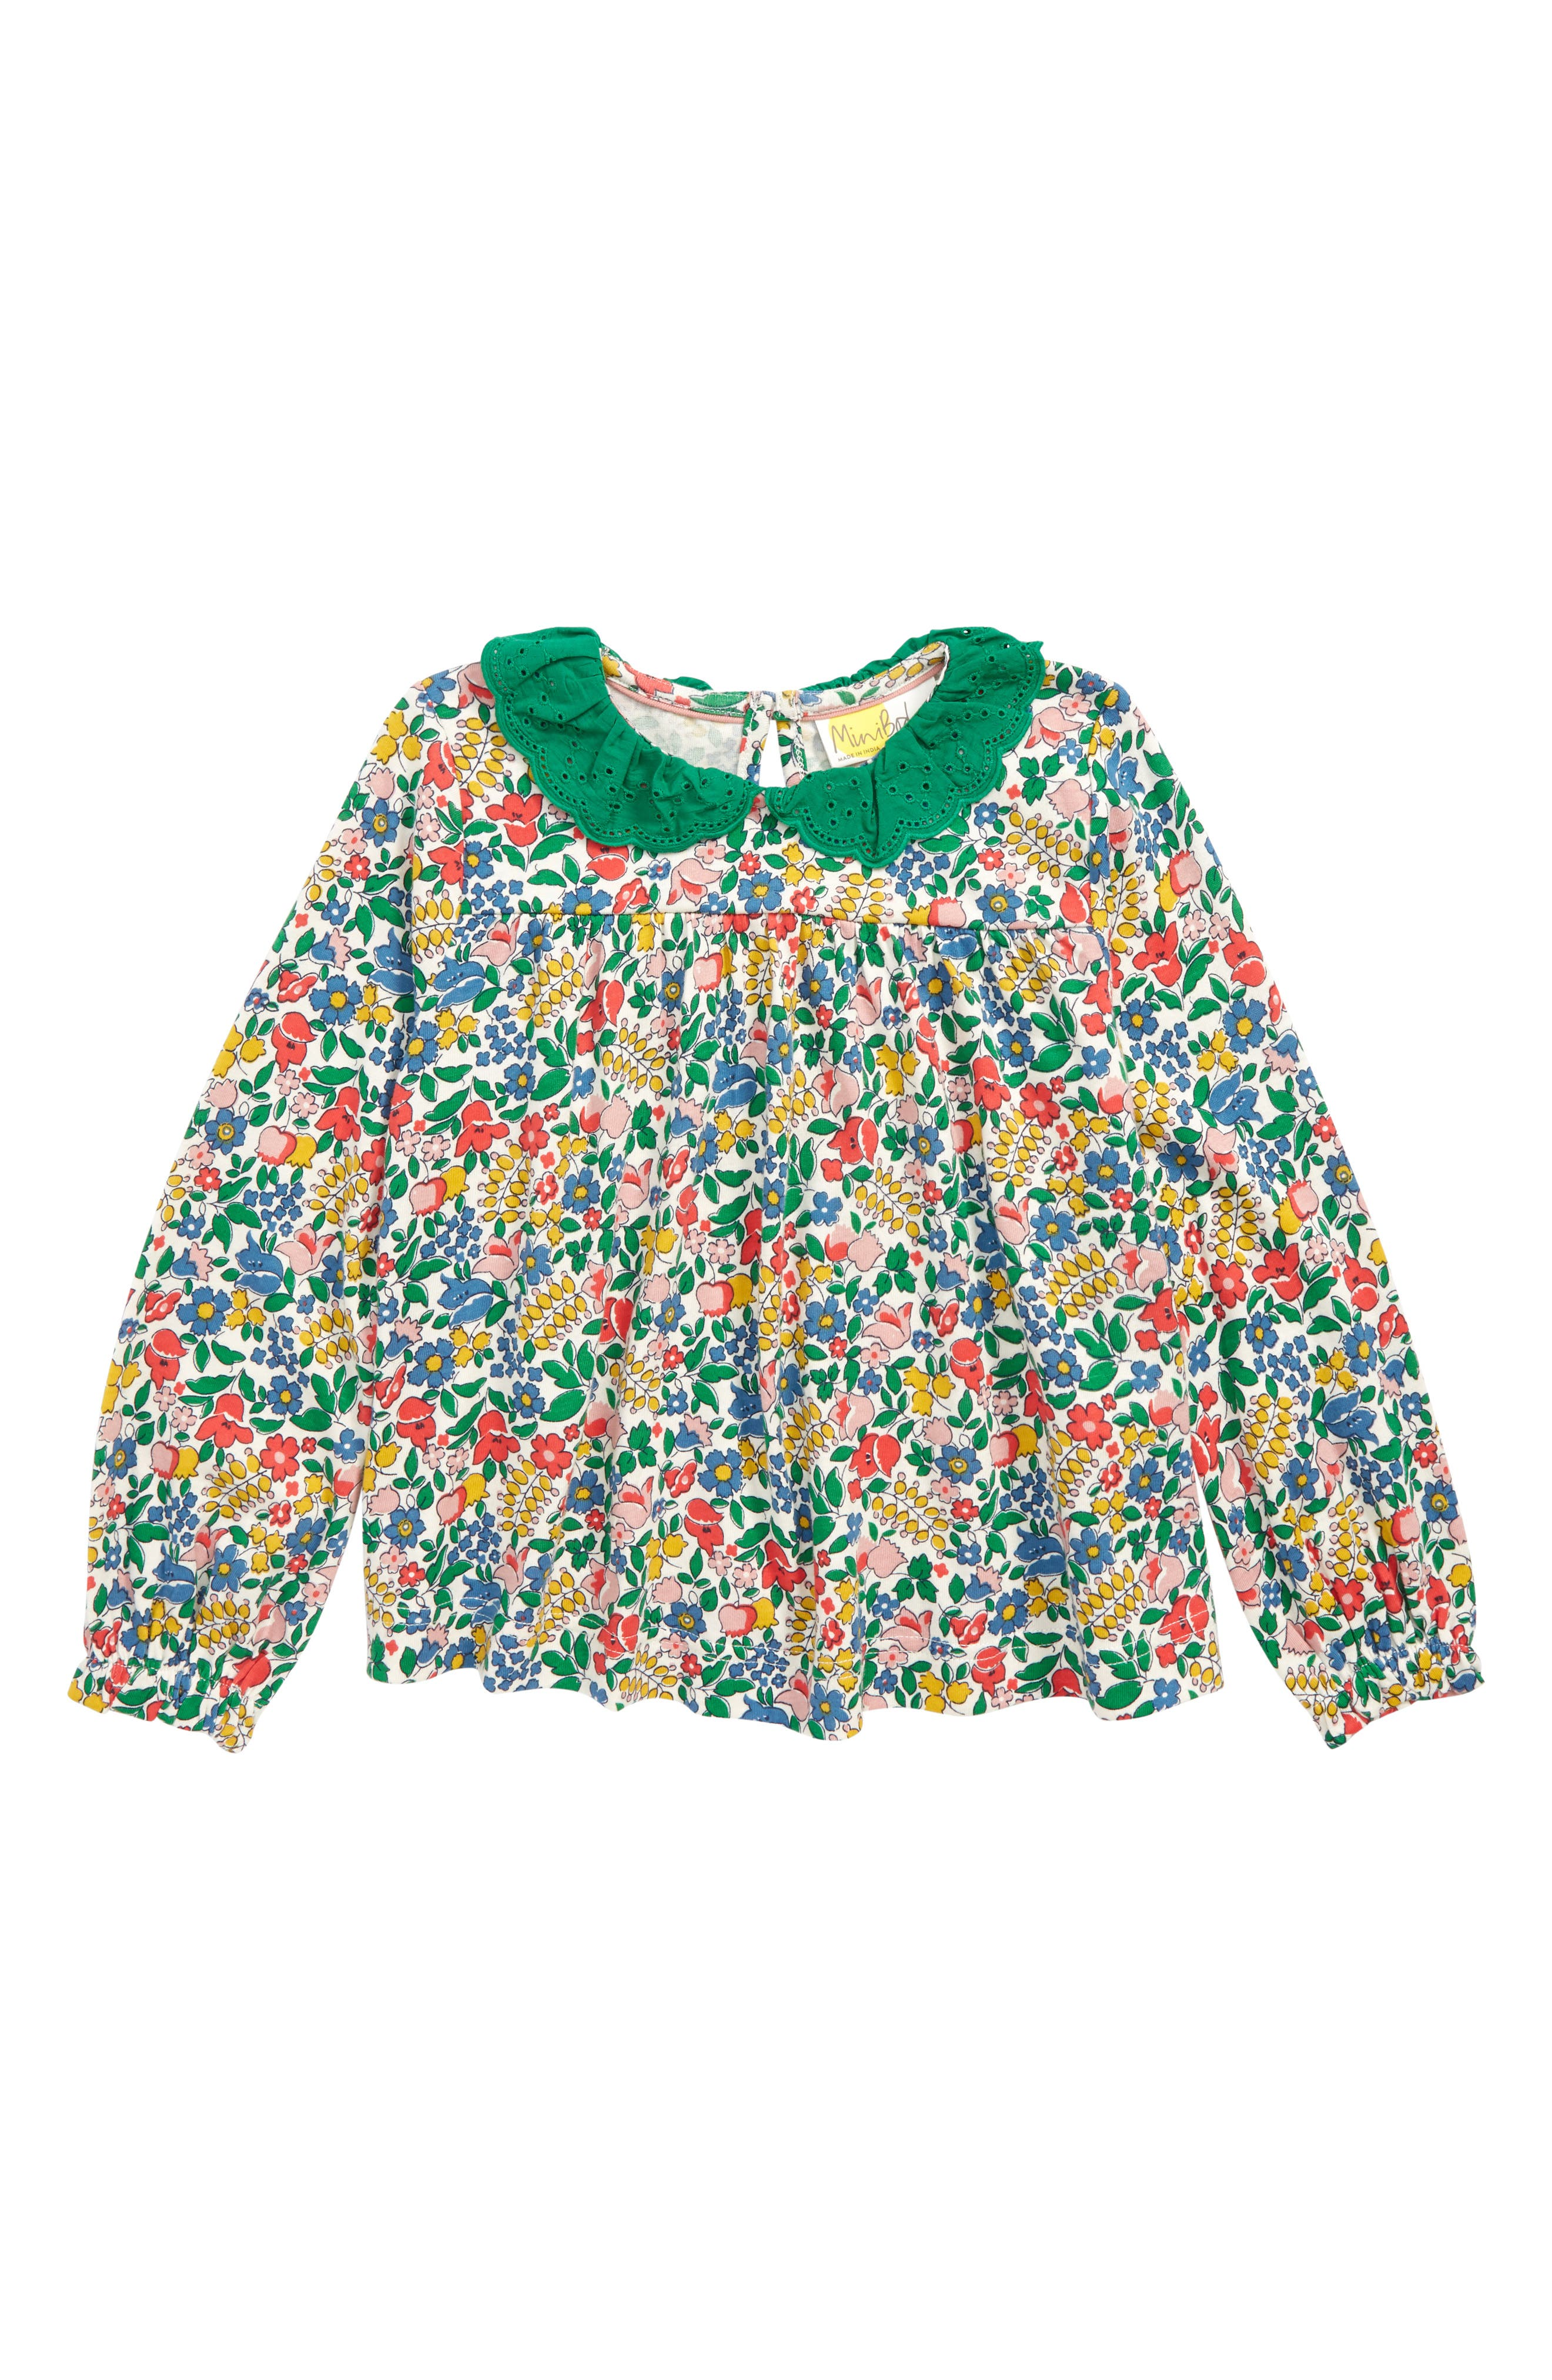 Broderie Collar Blouse,                             Main thumbnail 1, color,                             MULTI FLOWERBED